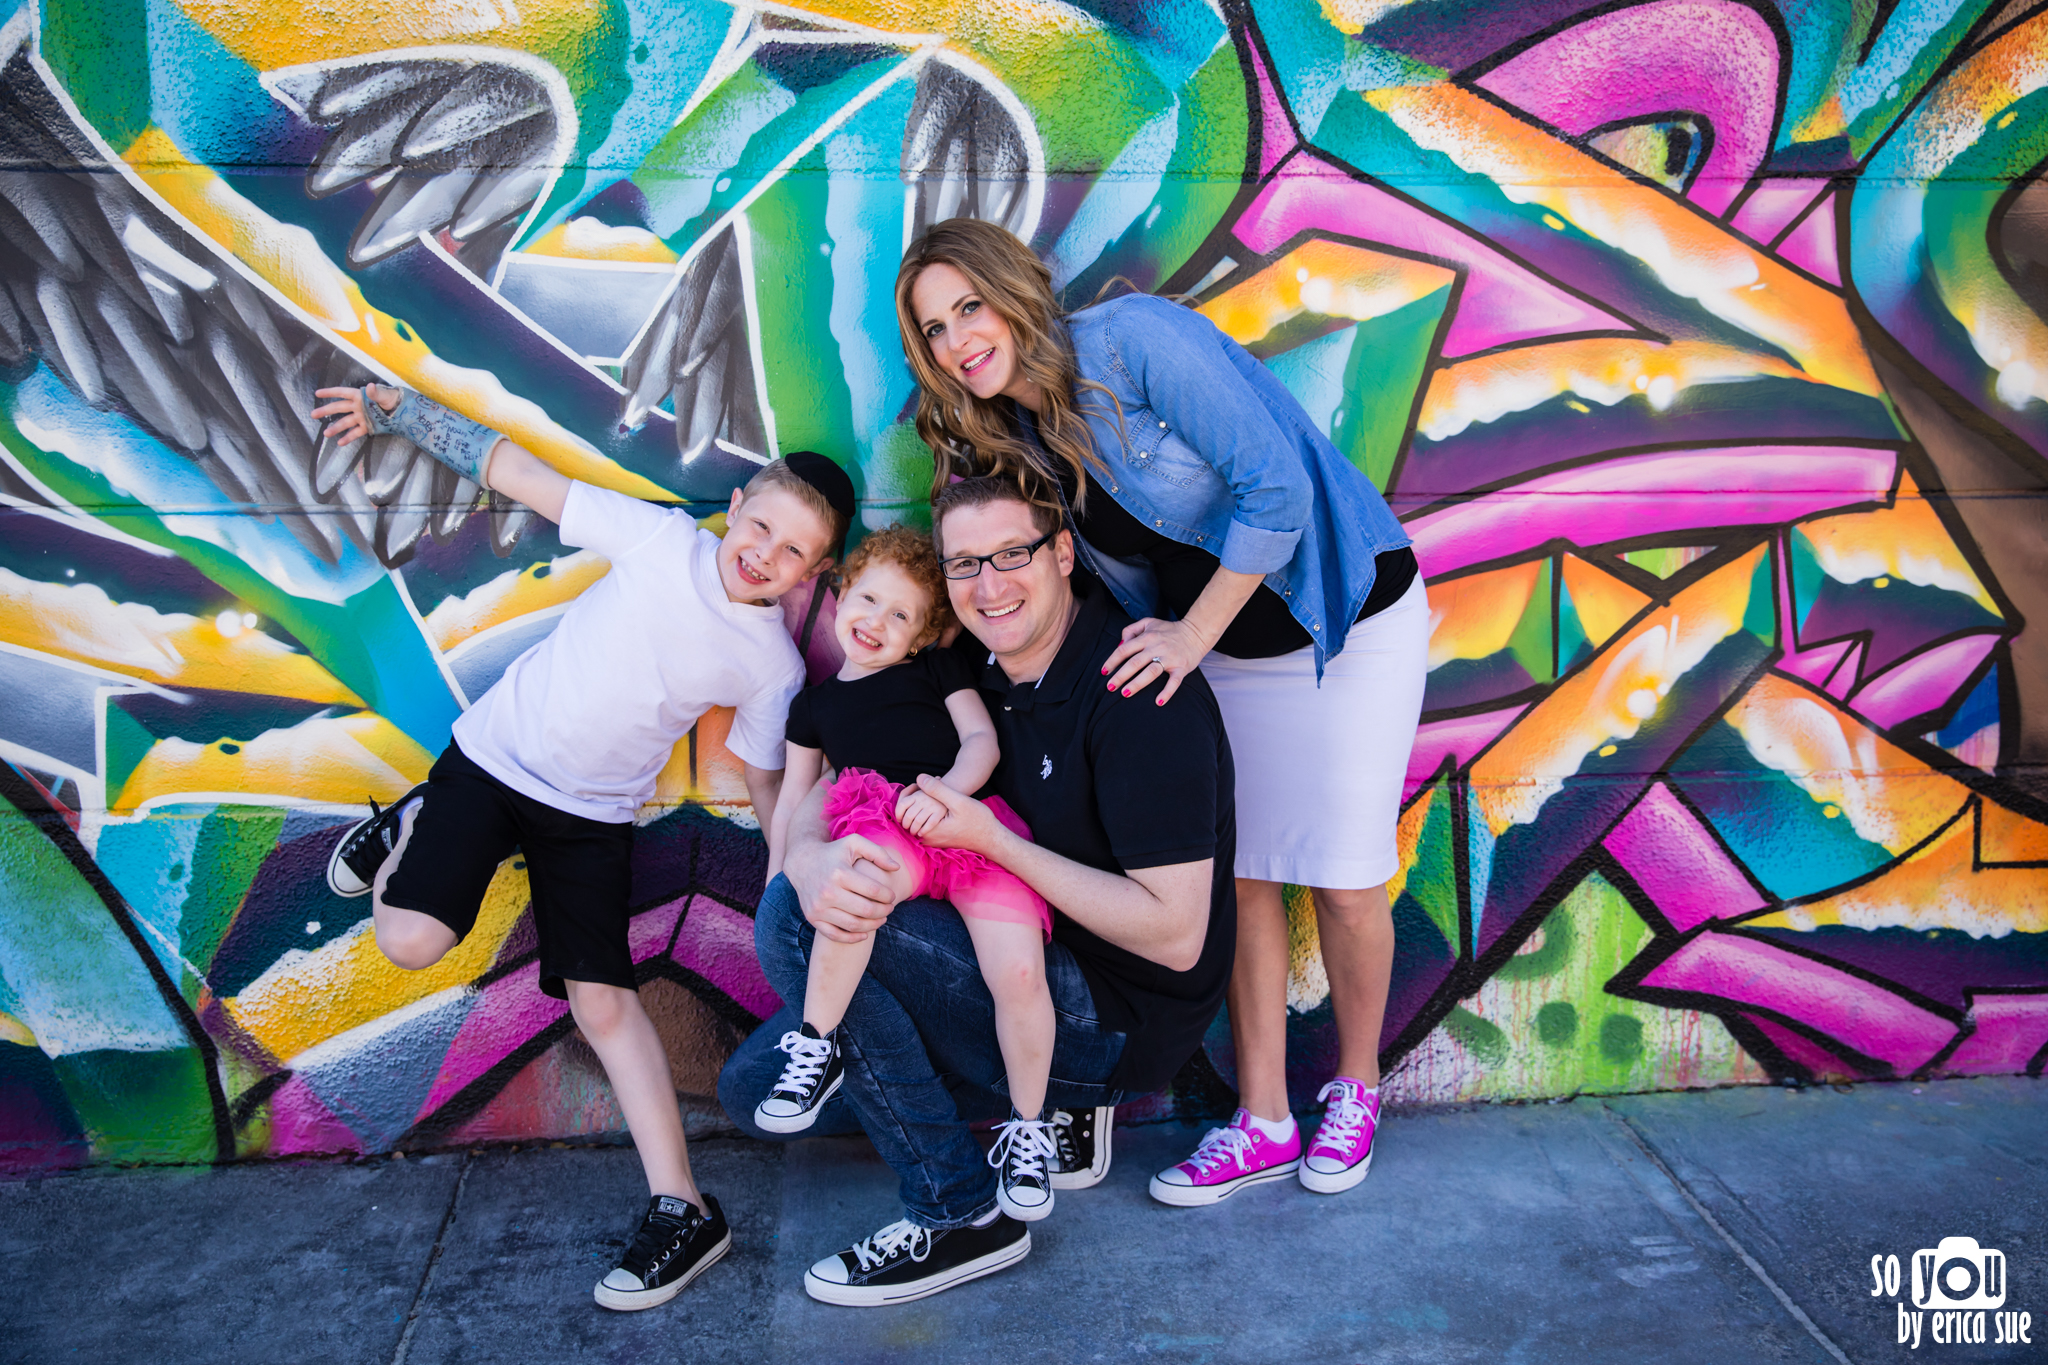 wynwood-family-photography-so-you-by-erica-sue-ft-lauderdale-davie-miami-fl-florida-2638.jpg